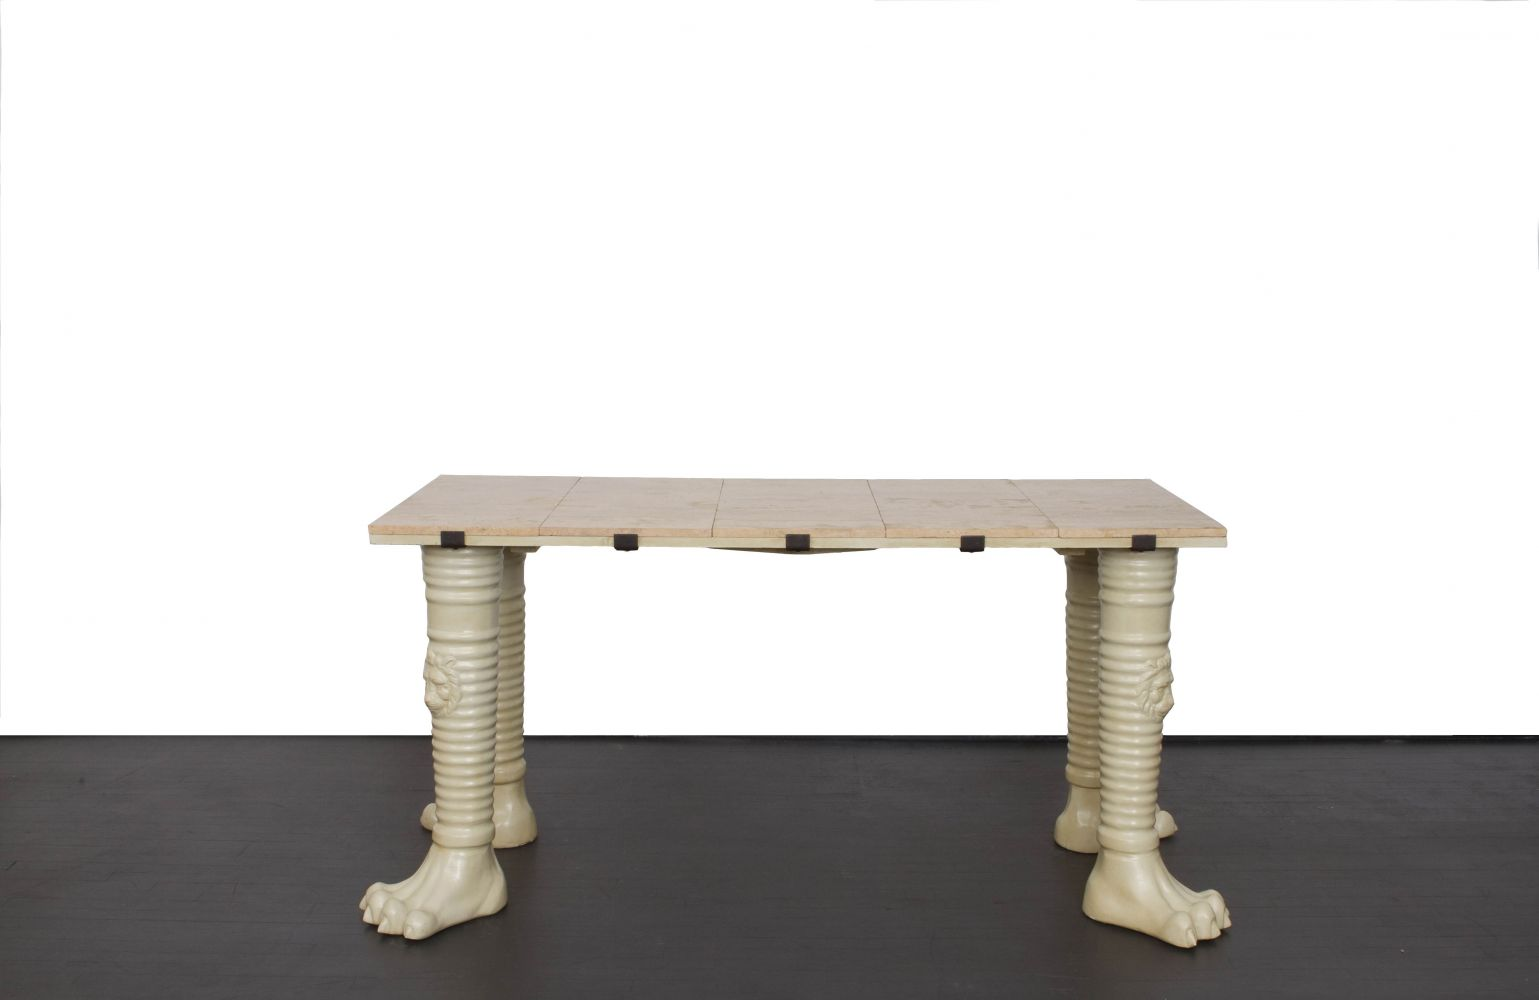 Jean-Charles Moreux - Table, c. 1940